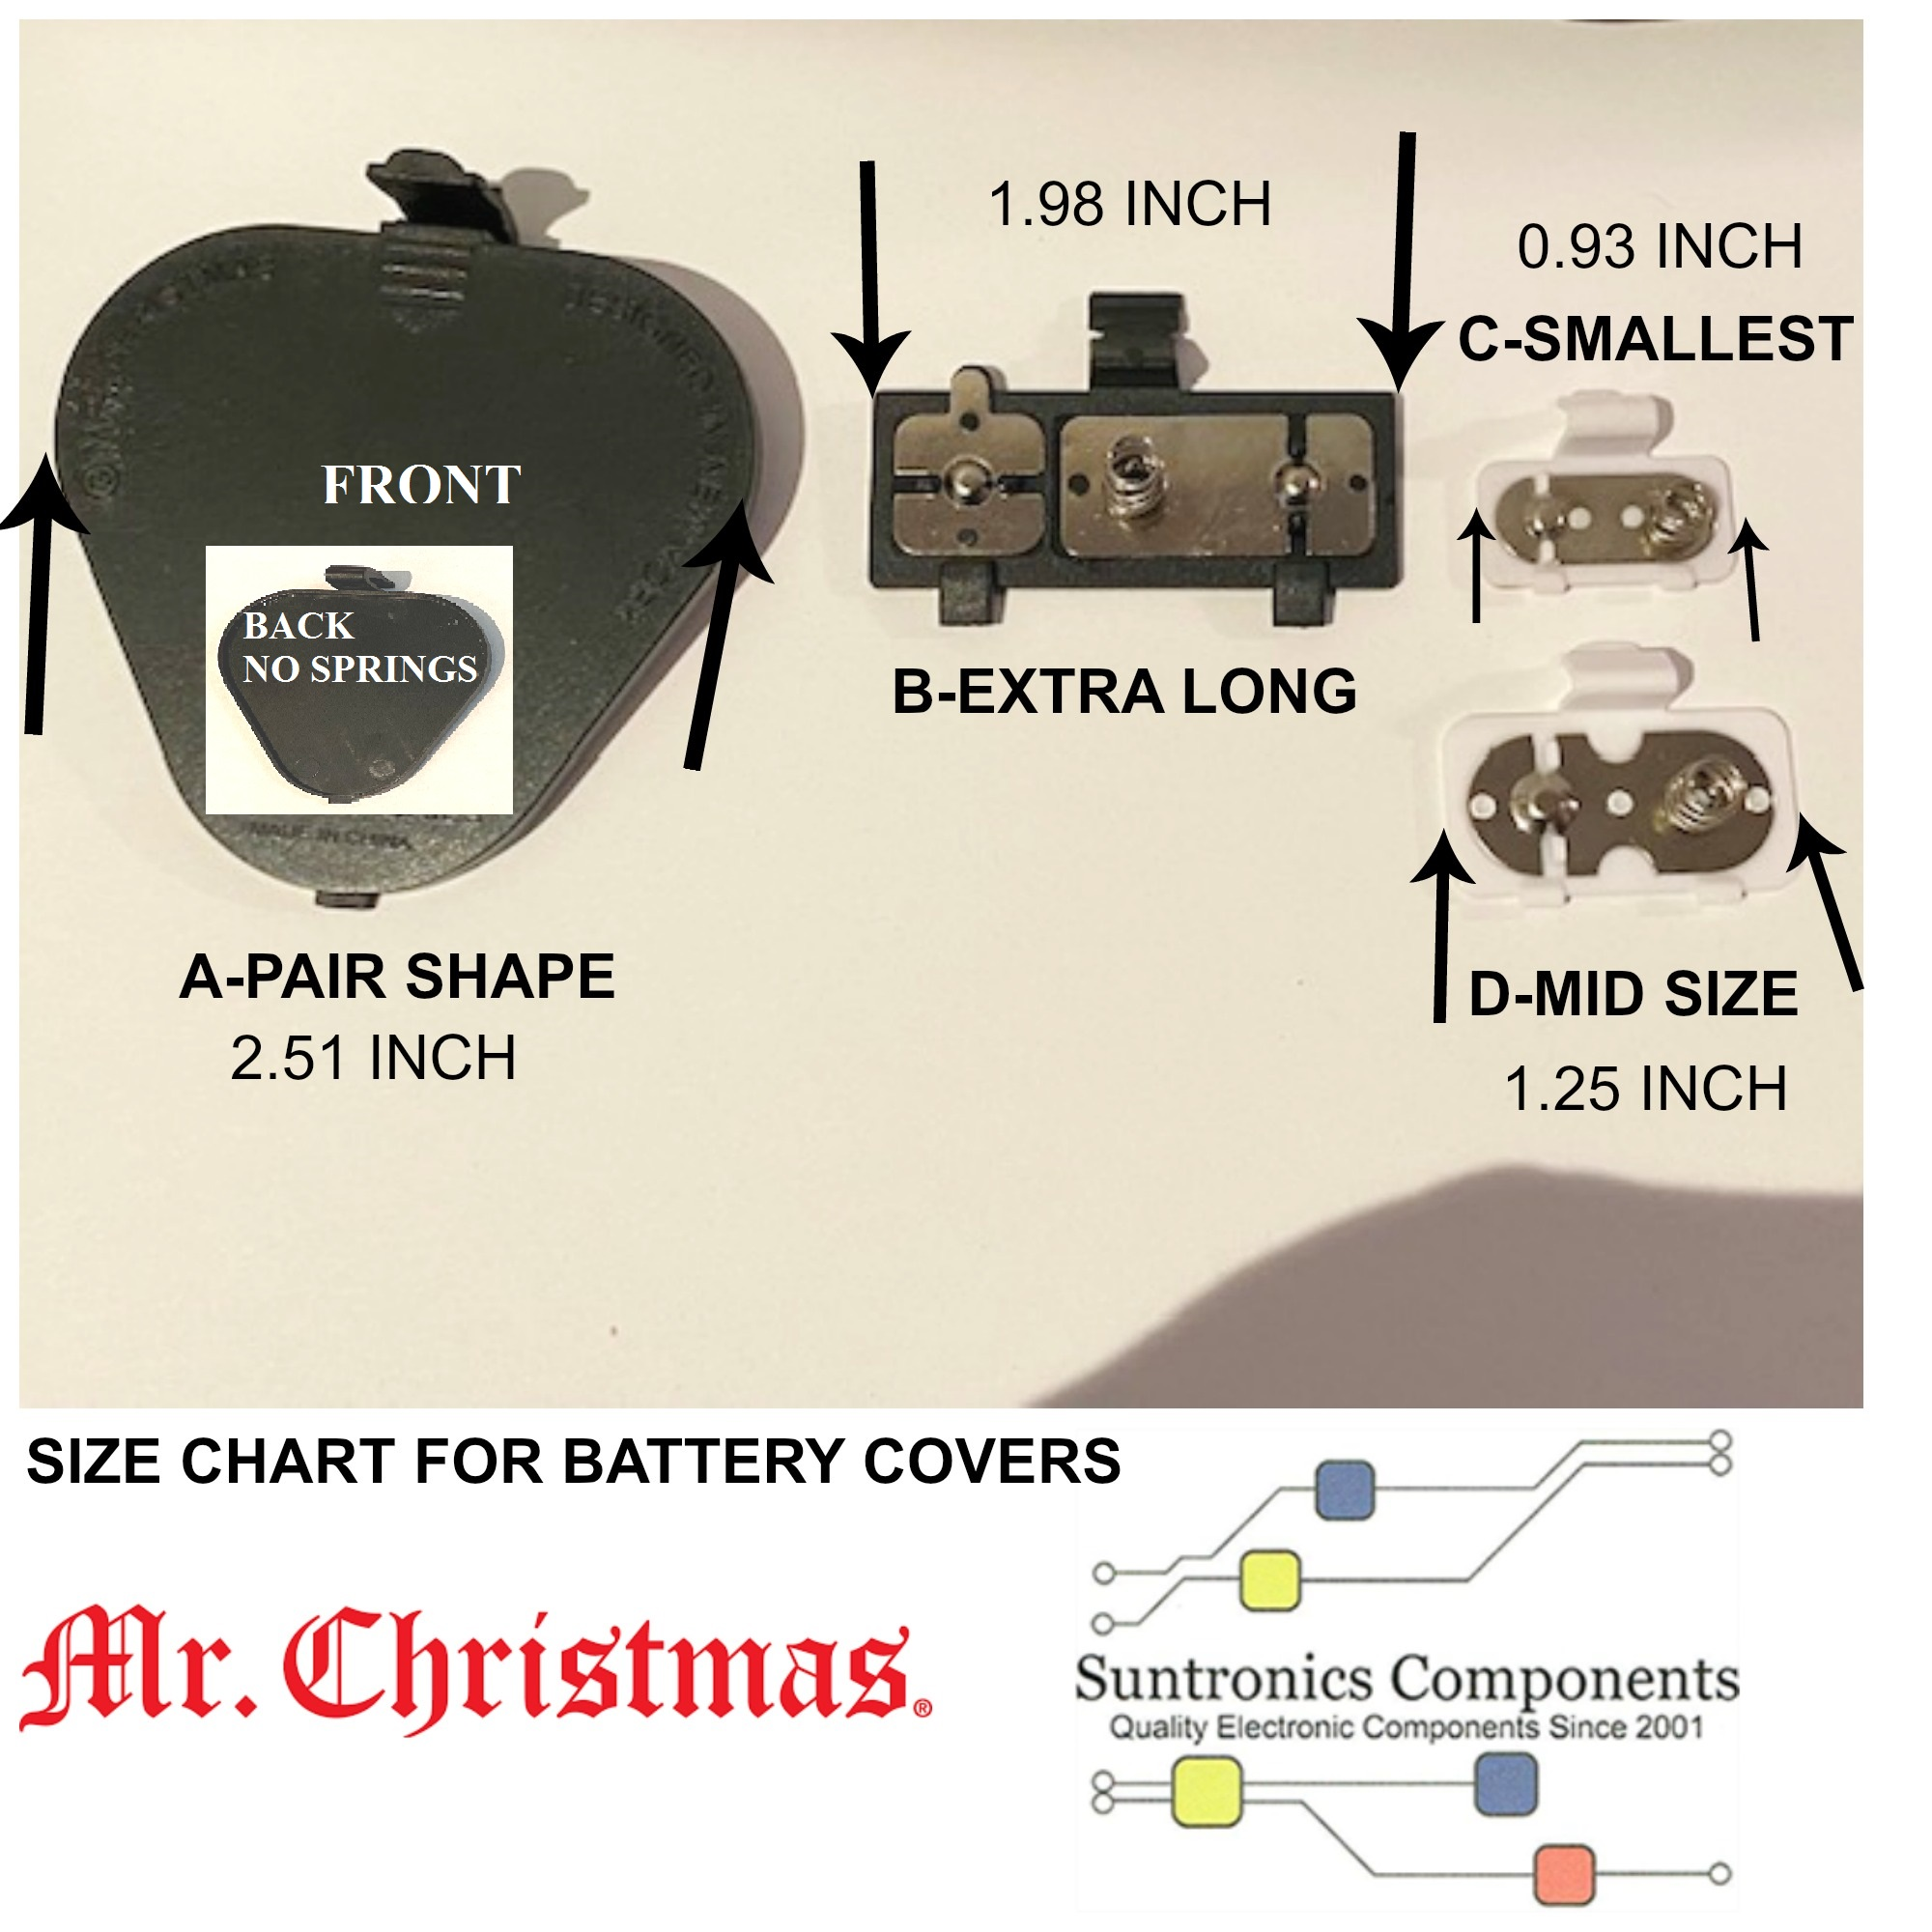 PicMonkey Image MR CHRISTMAS  BATTERY CO